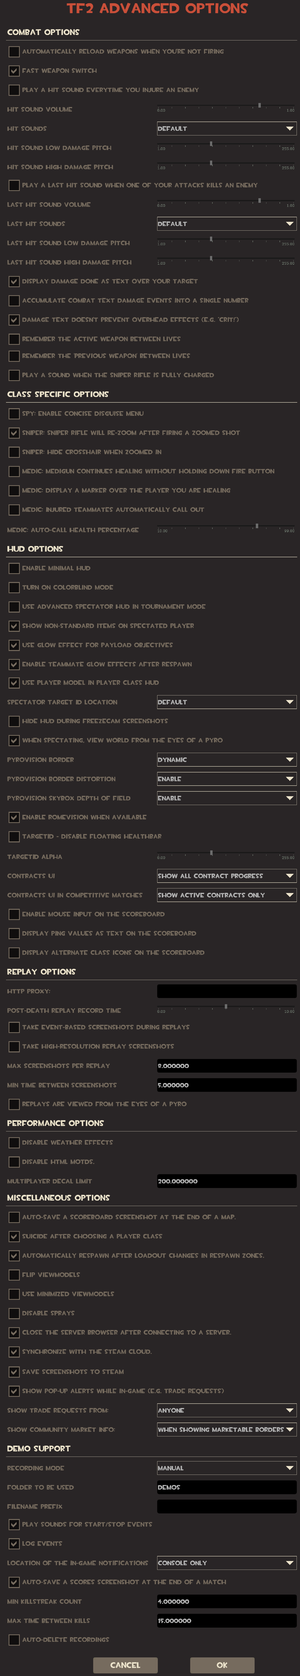 In-game advanced options/multiplayer settings.